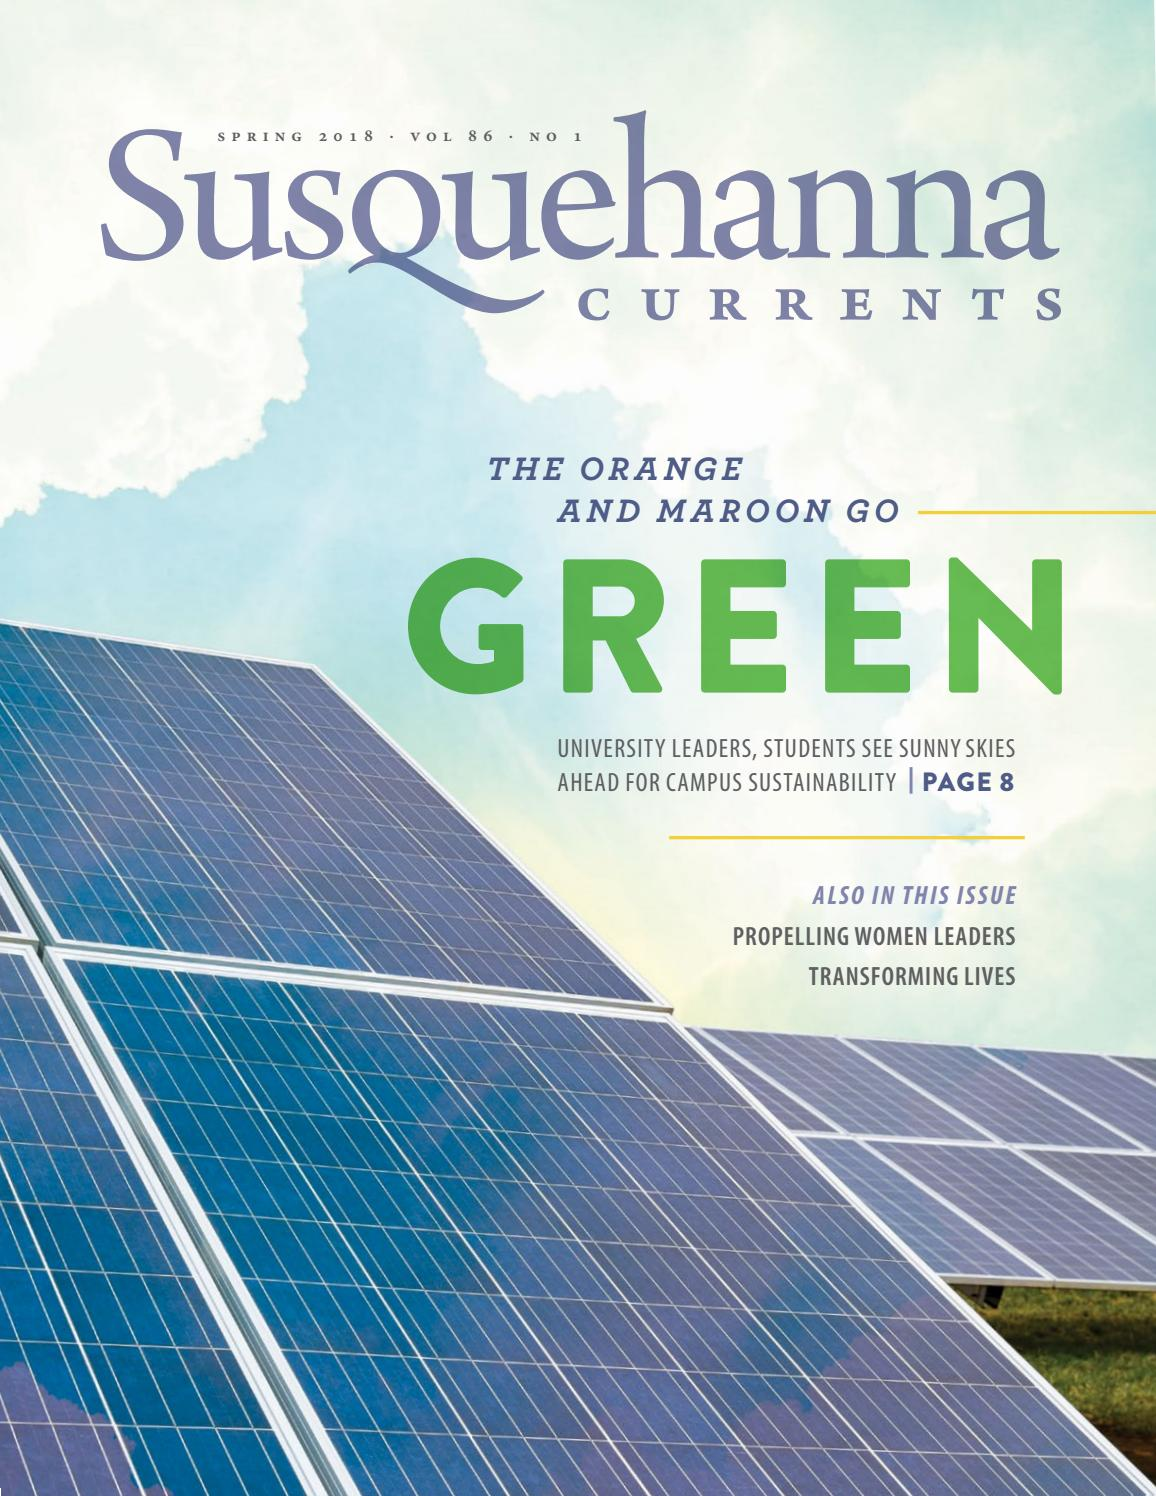 Susquehanna Currents Spring 2018 By University Issuu If You Run Out Of Room On The Starter Relay Quotbquot Post Install A Power